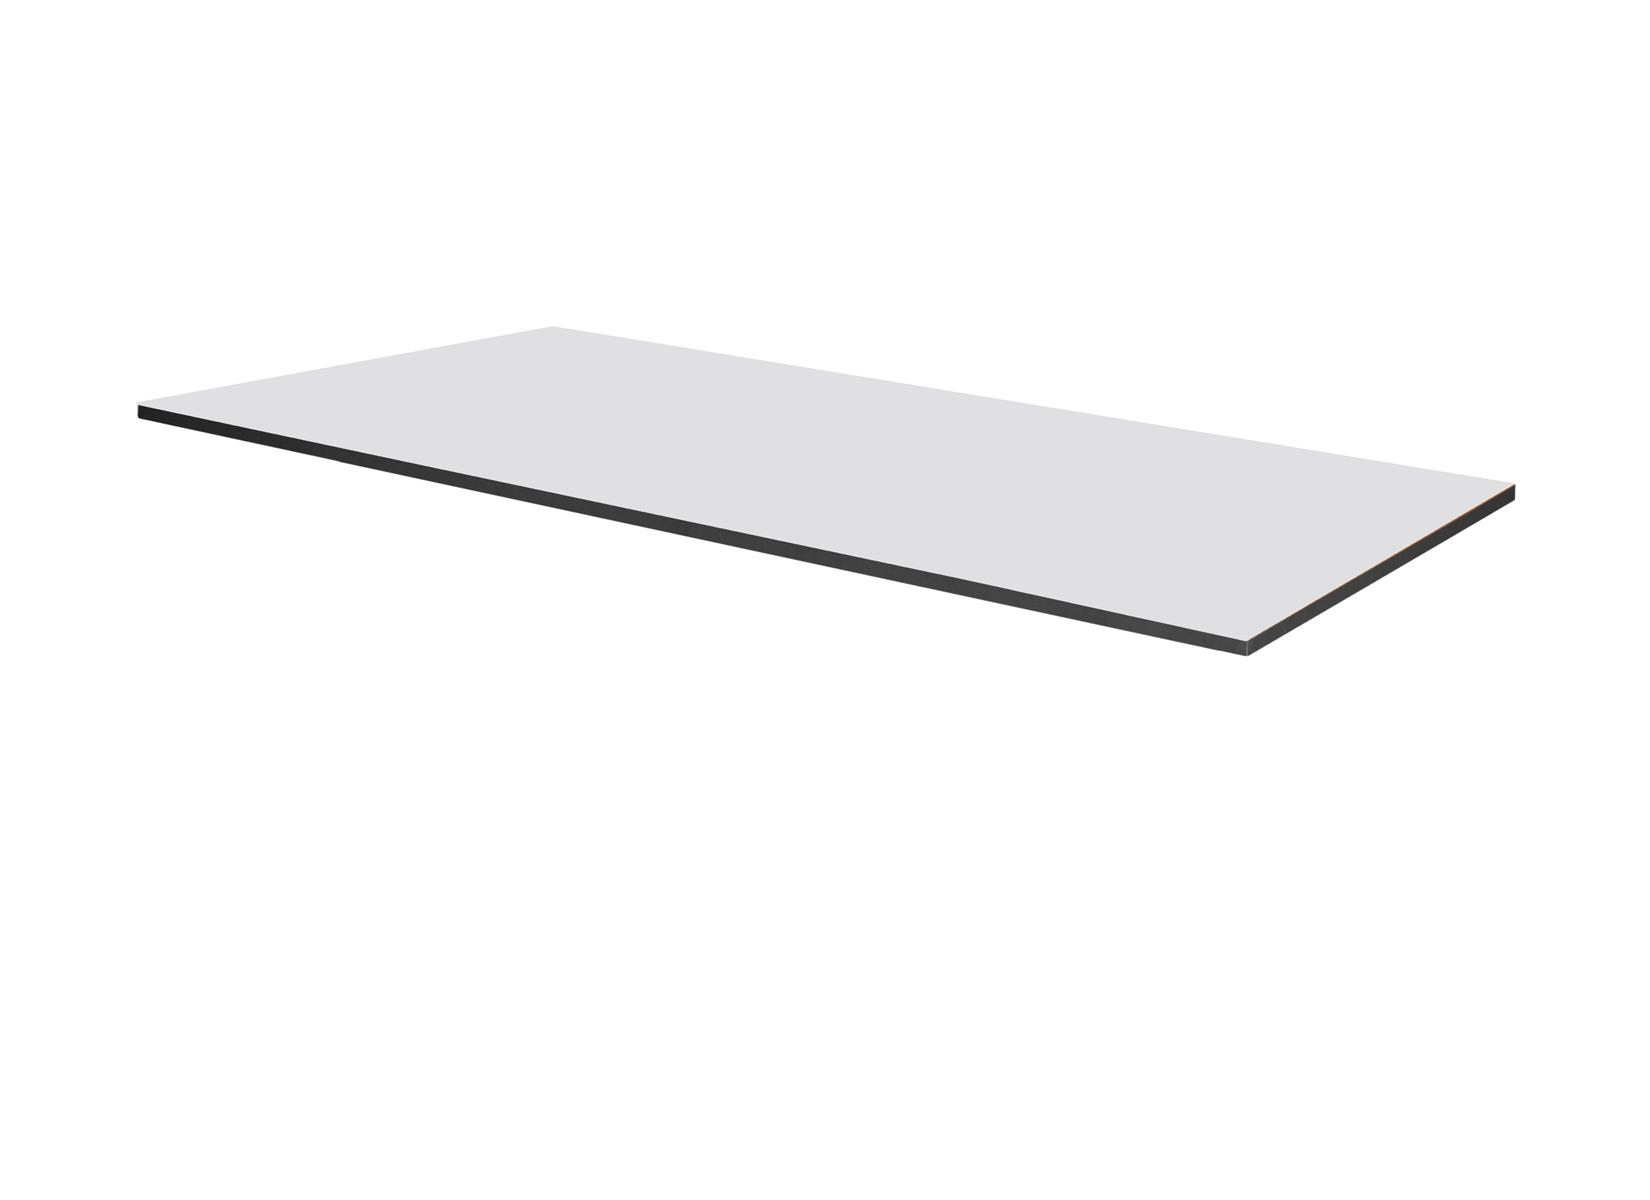 Reception Table / Reception Counter / Counter Top Table  AC-180G